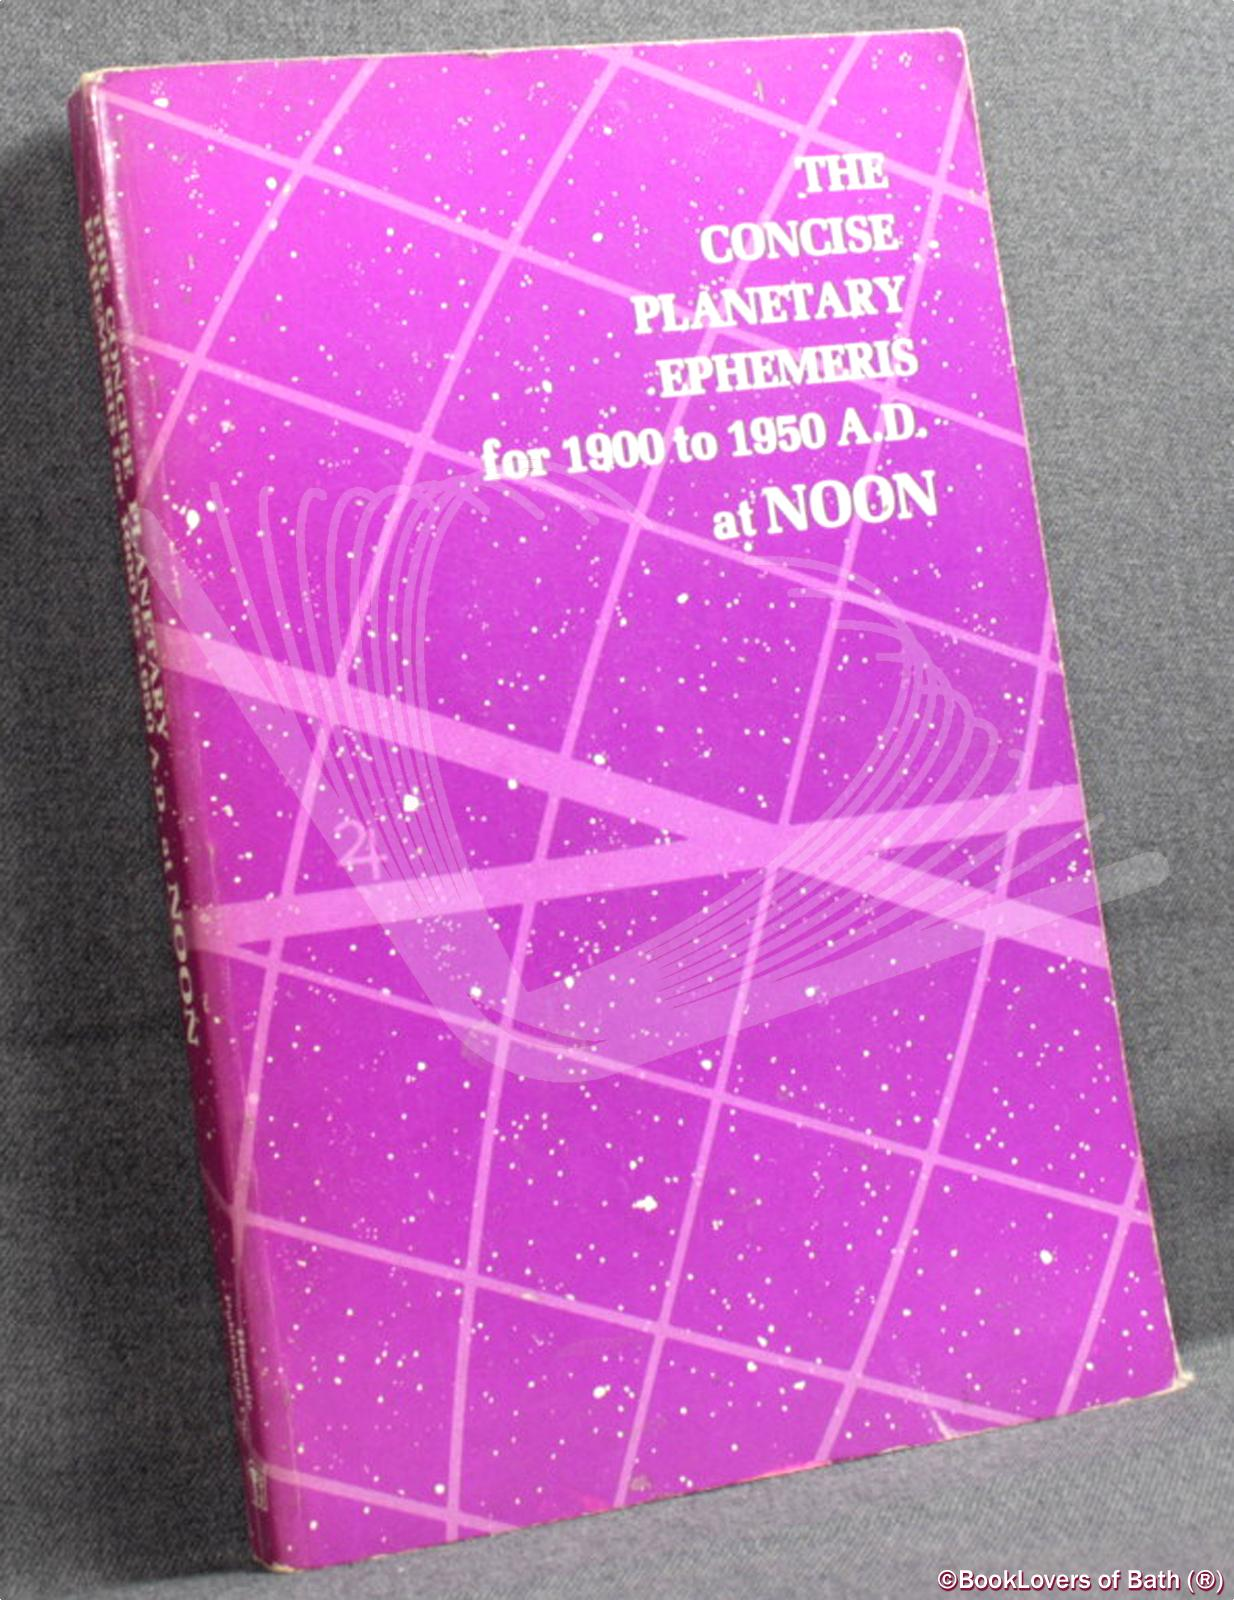 The Concise Planetary Ephemeris for 1900 to 1950 A.D at Noon - ANON.